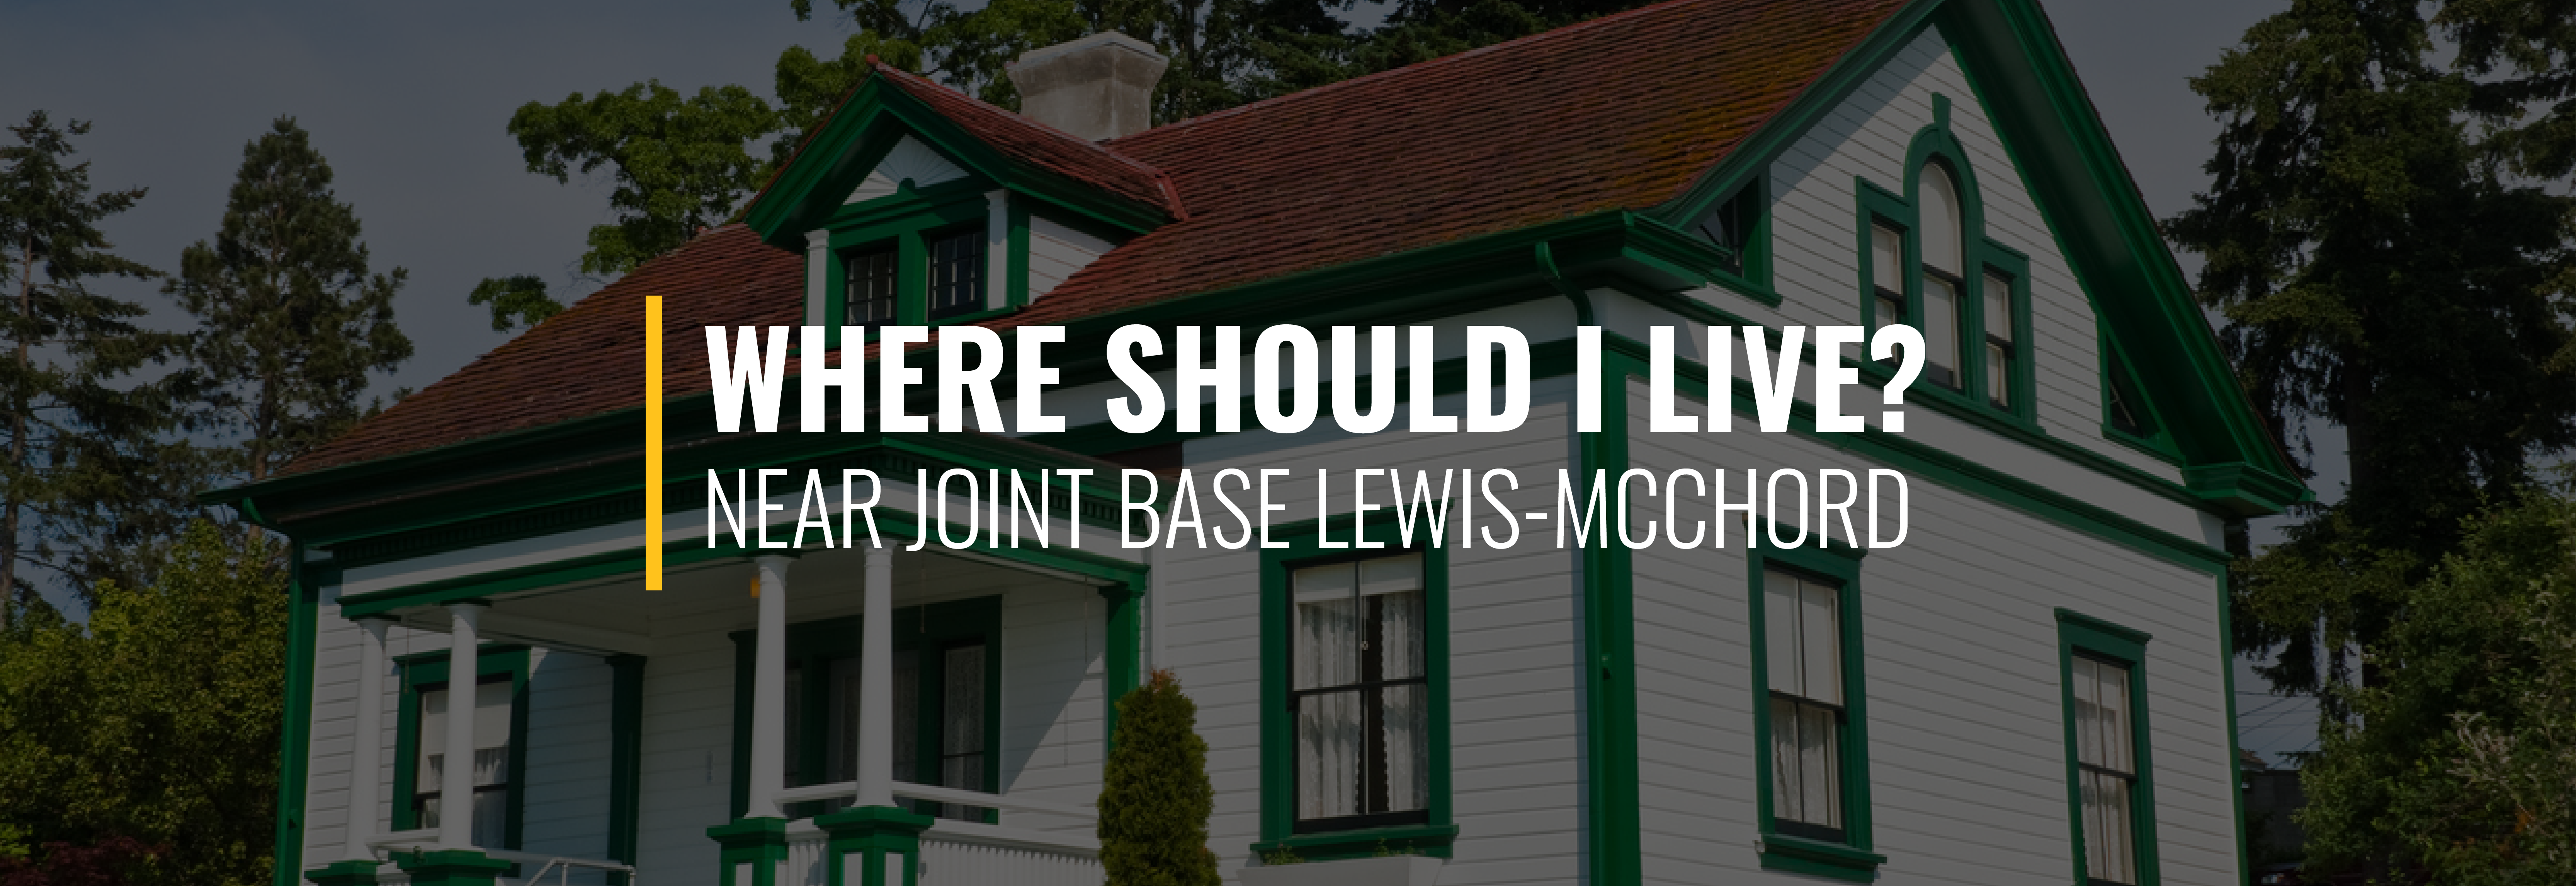 Where Should I Live Near Joint Base Lewis-McChord?